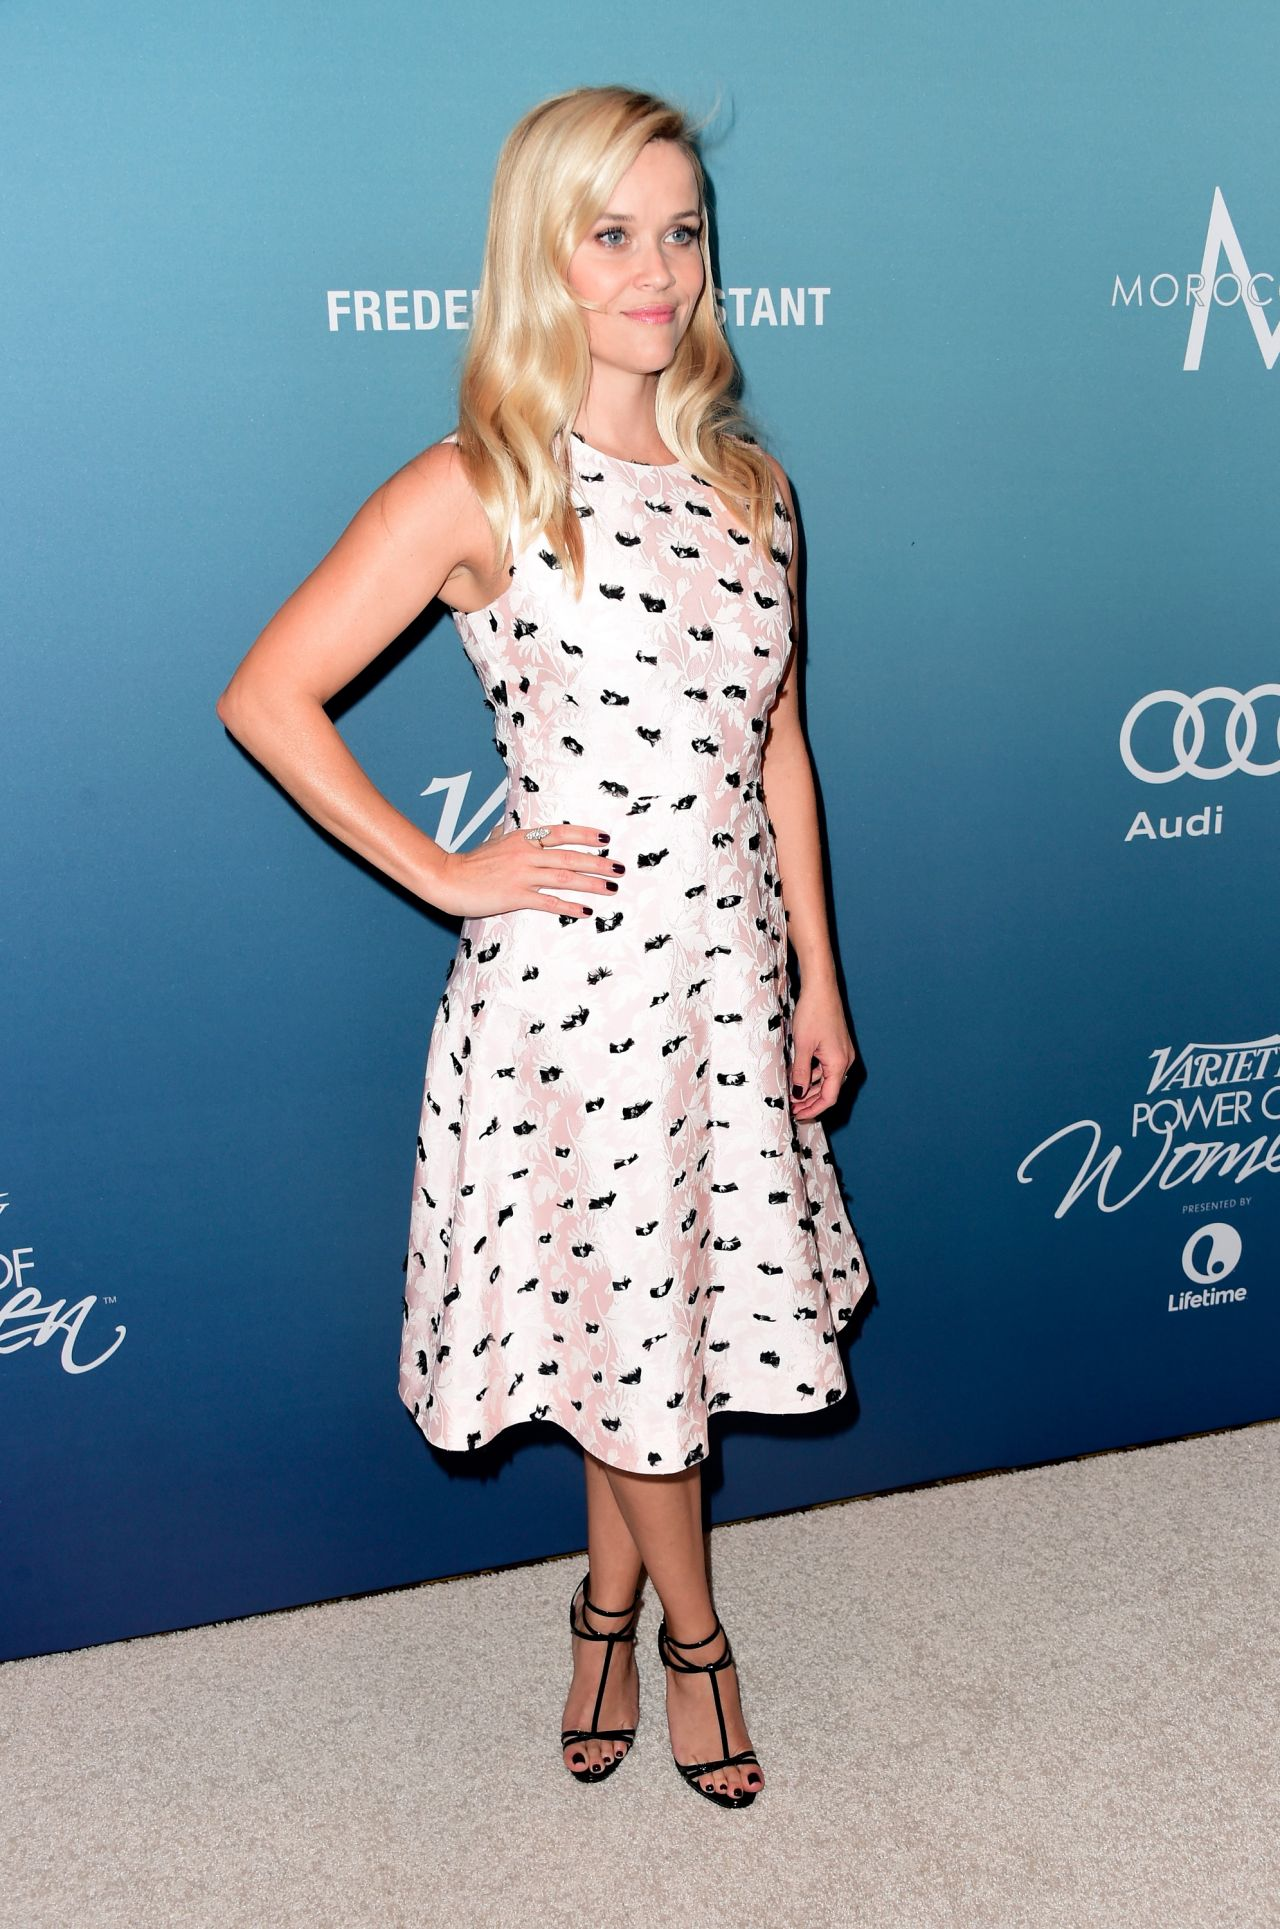 reese-witherspoon-variety-s-power-of-women-luncheon-in-beverly-hills-october-2015_12